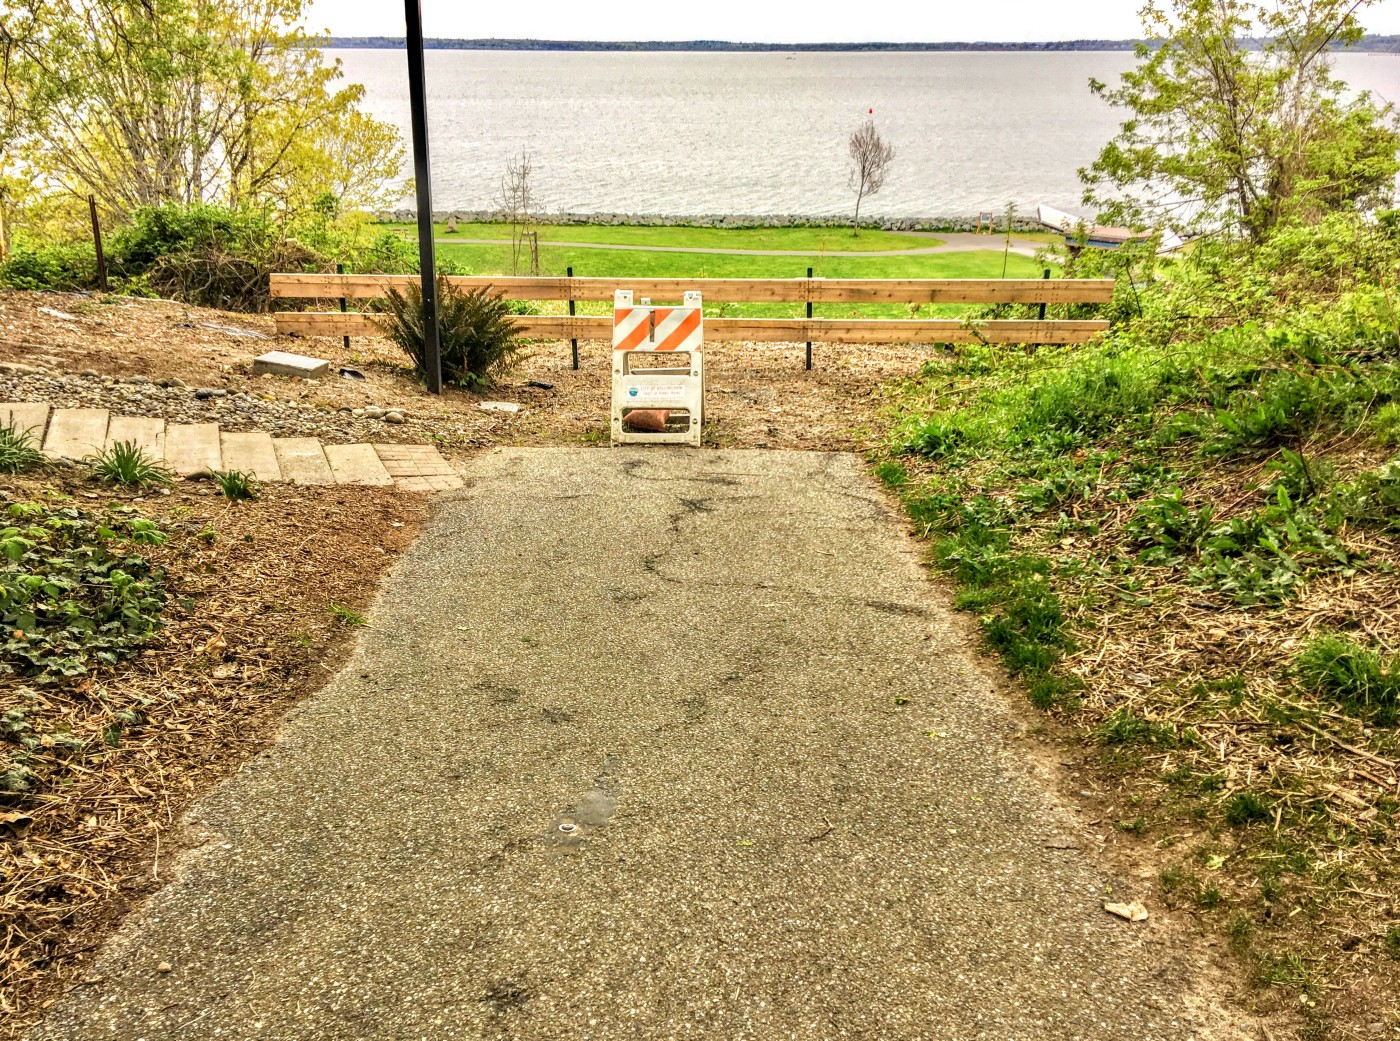 A paved trail dead-ends at a barricade with a new fence and bay in the background